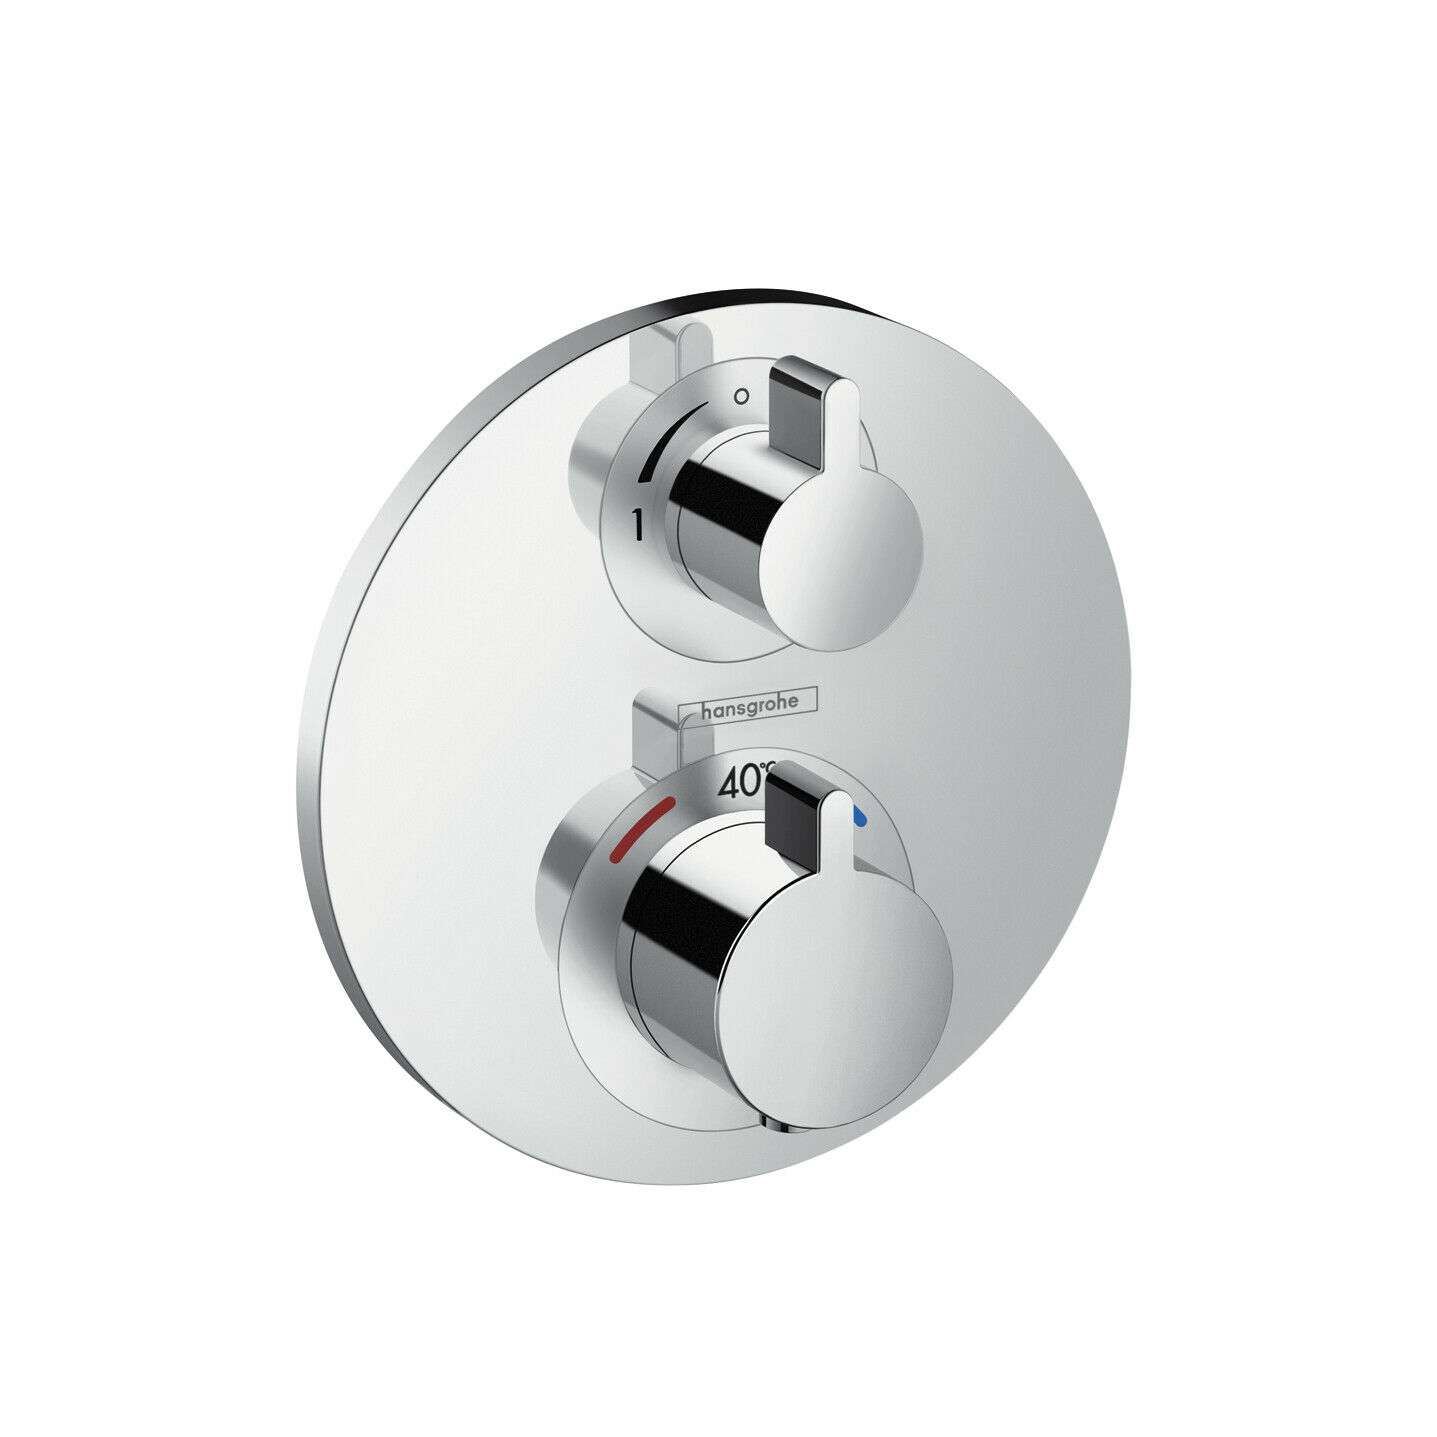 Hansgrohe ECOSTAT S Thermostat Fitting Flush-Mounted In-Wall Shower up 15757000